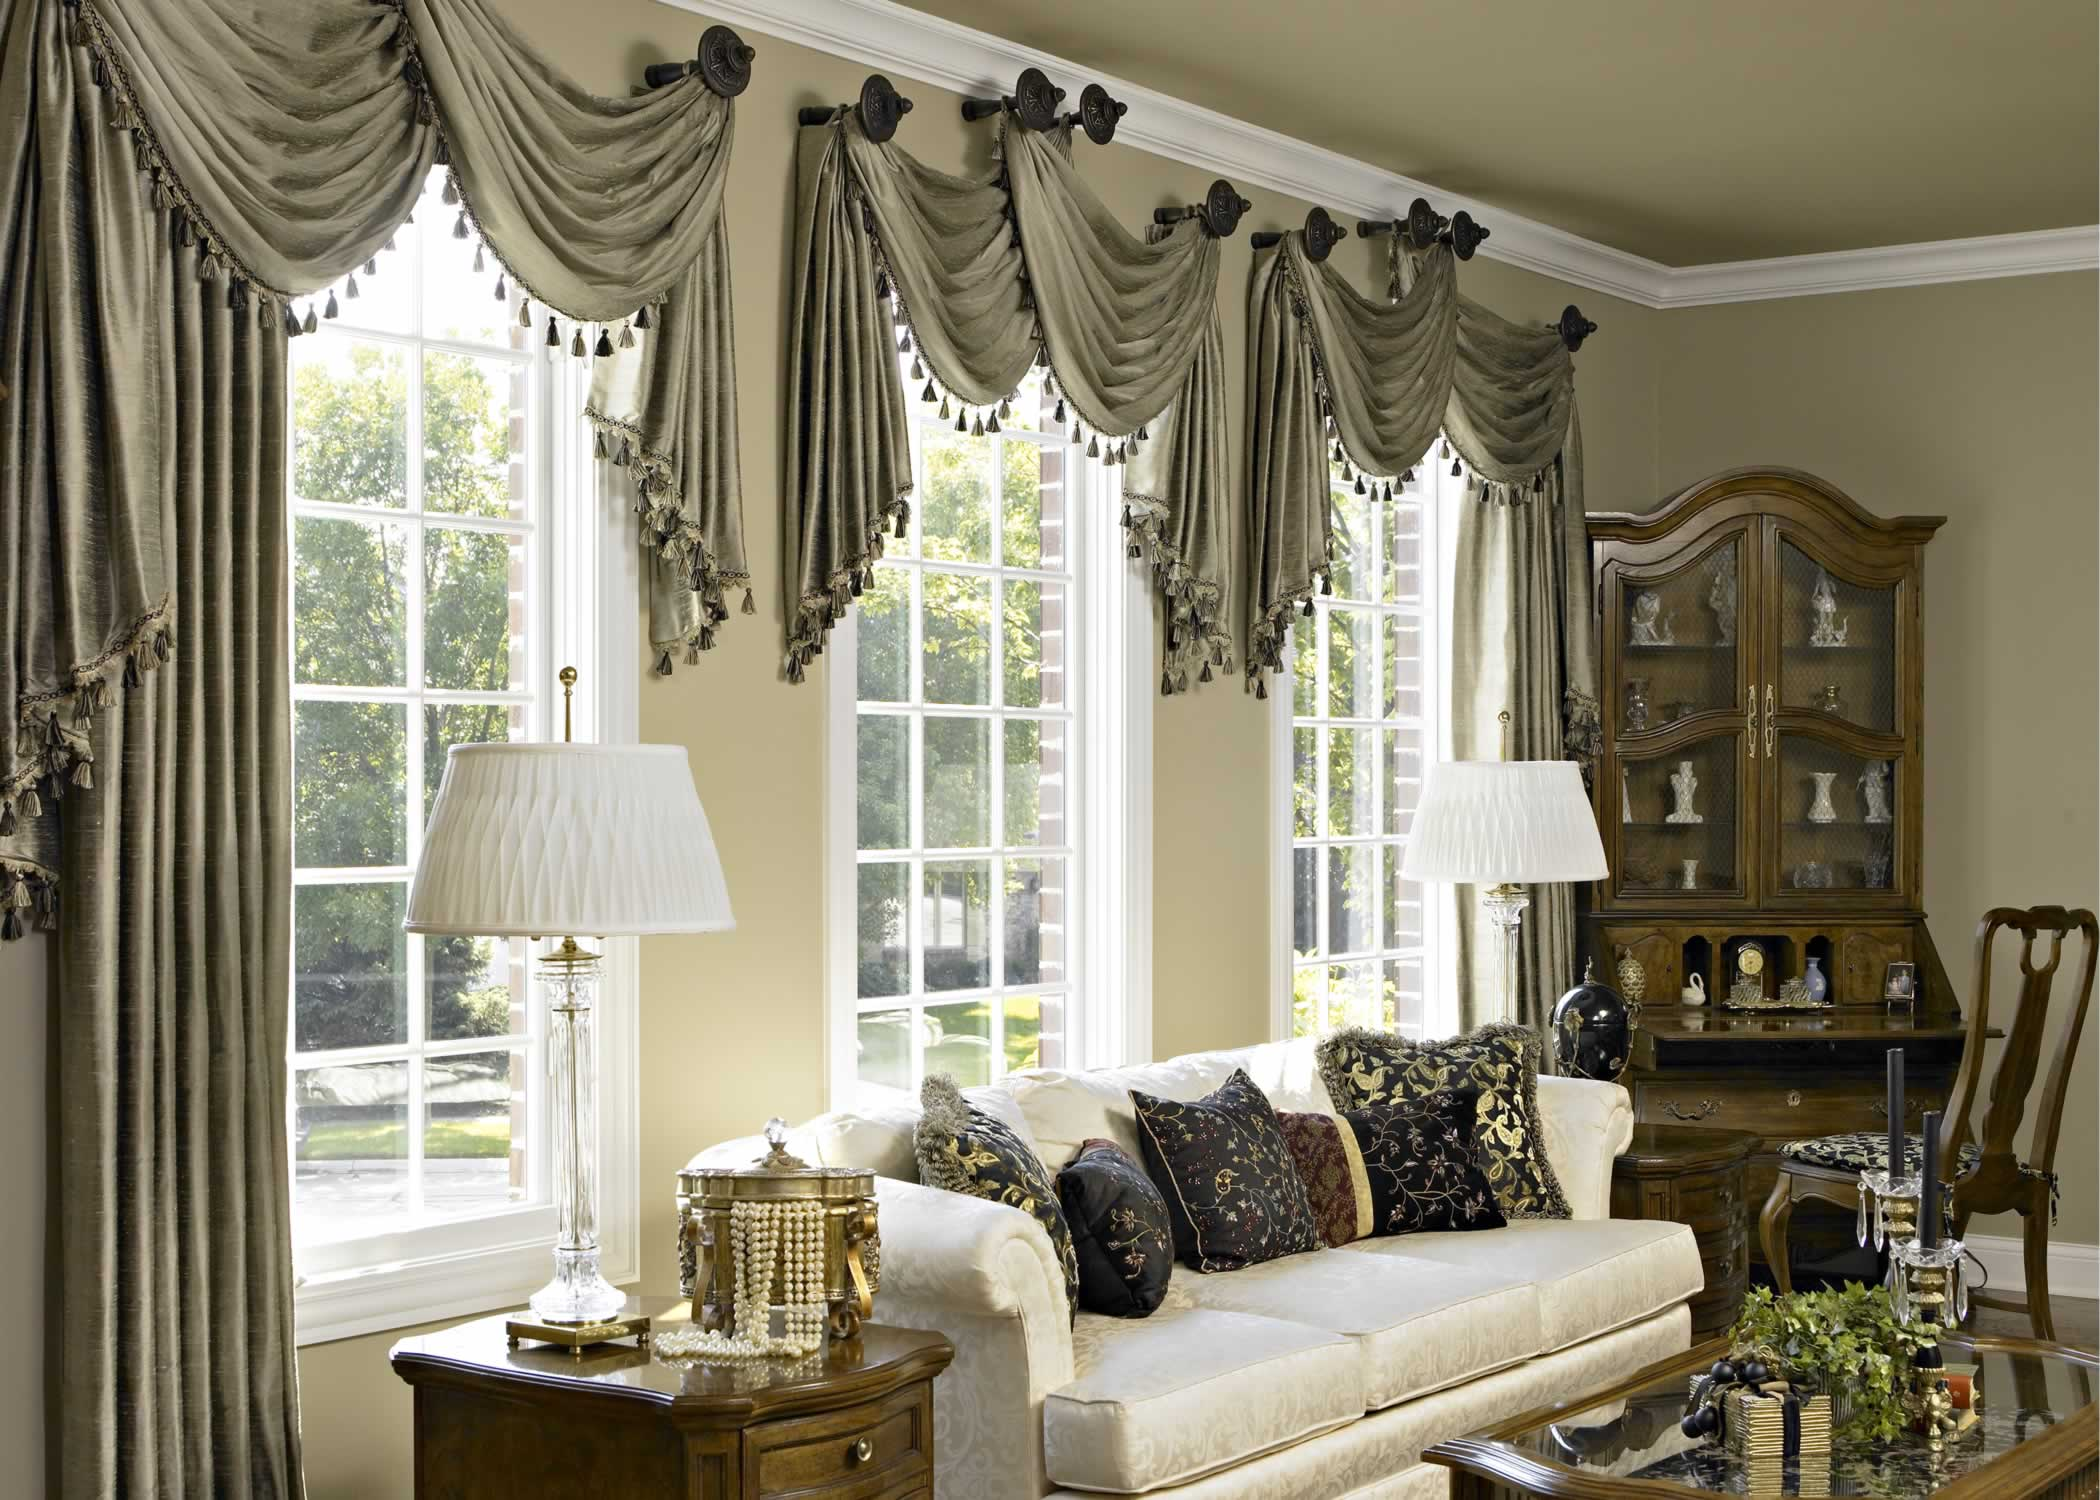 Need To Have Some Working Window Treatment Ideas? We Have Them ...